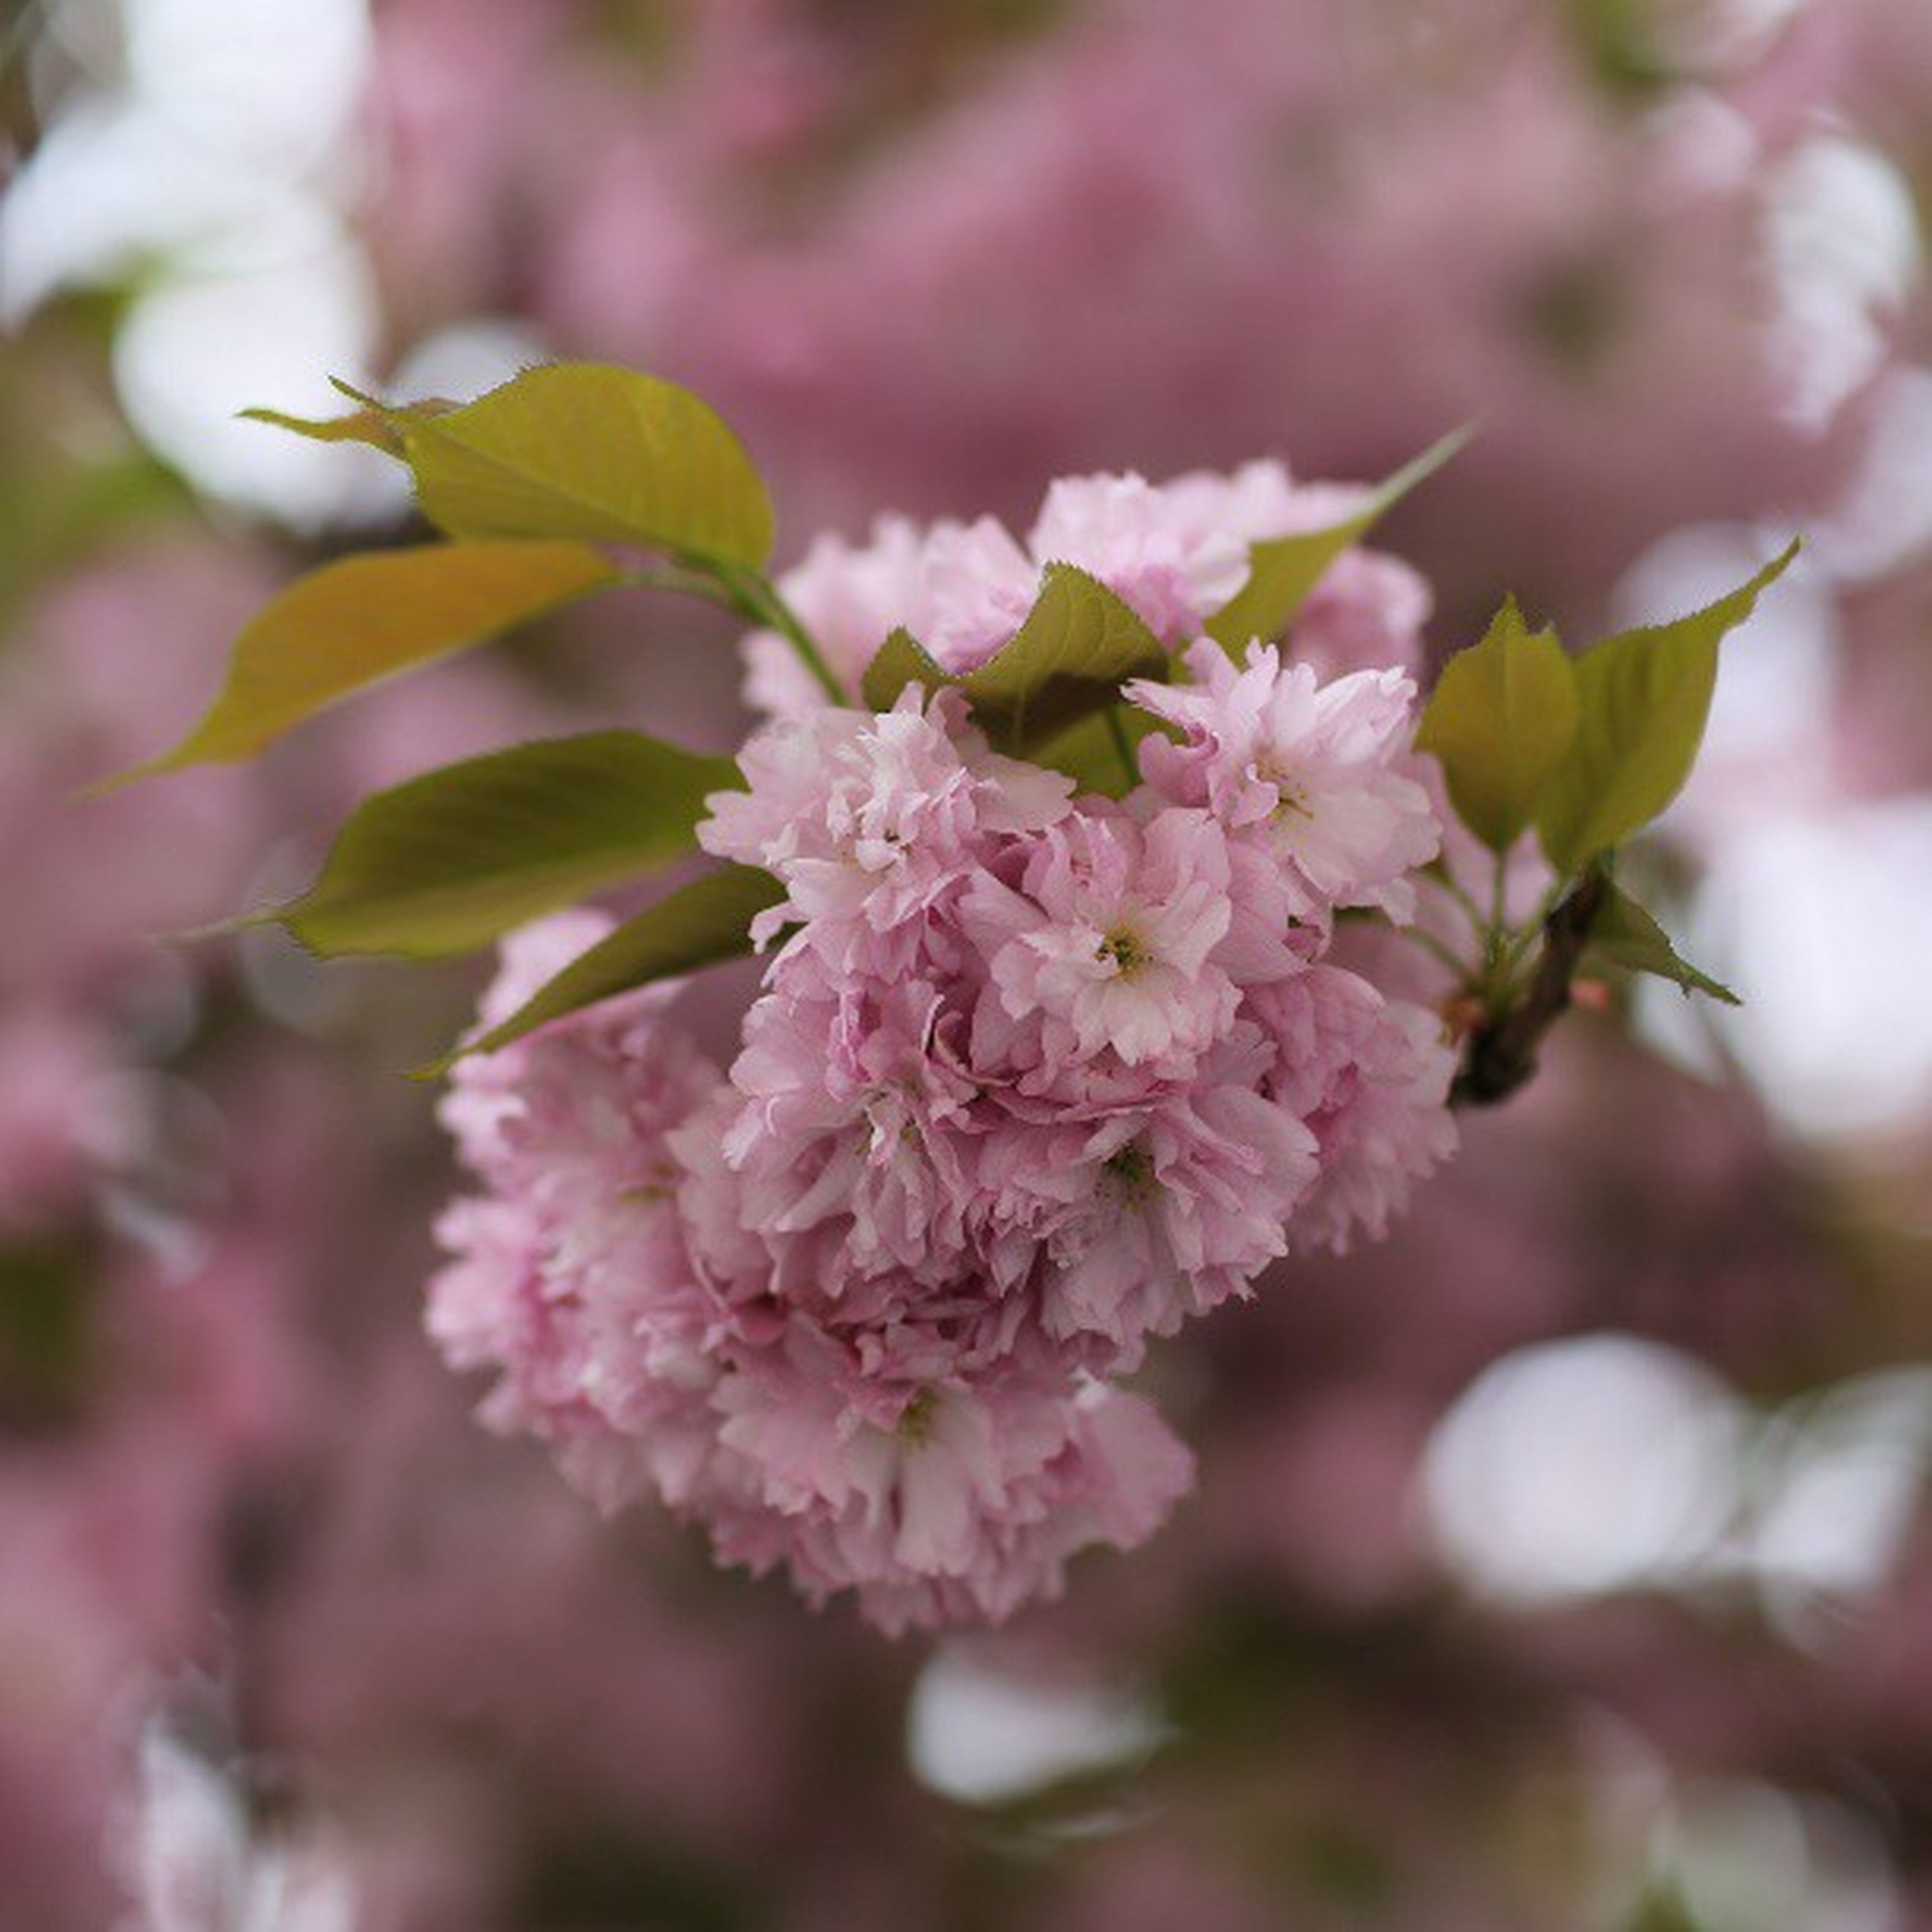 flower, freshness, growth, fragility, pink color, beauty in nature, focus on foreground, petal, close-up, nature, branch, blossom, blooming, in bloom, tree, flower head, plant, springtime, selective focus, cherry blossom